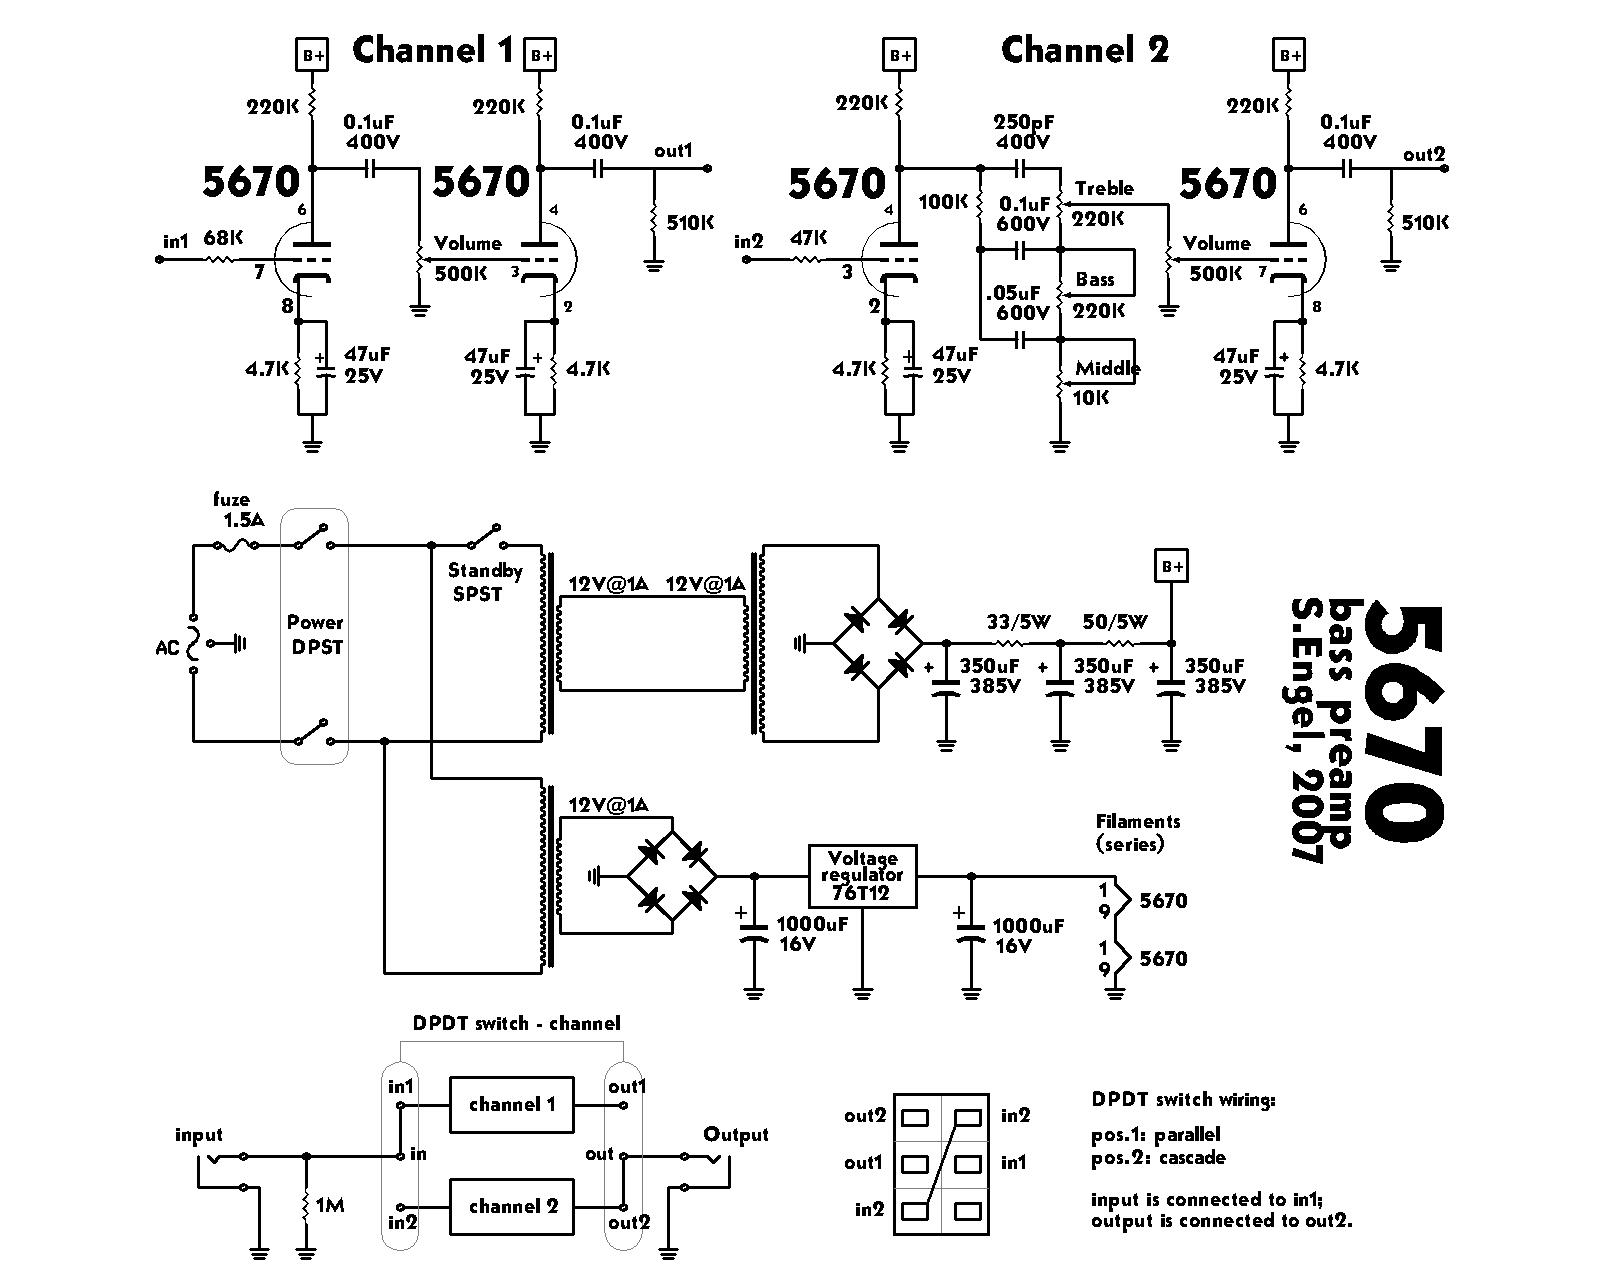 5670 tube preamp schematic auto electrical wiring diagram \u2022 diy tube guitar amp schematics engel sound experiment tube bass preamplifier rh meatexz com diy tube amp schematics tube amp schematics